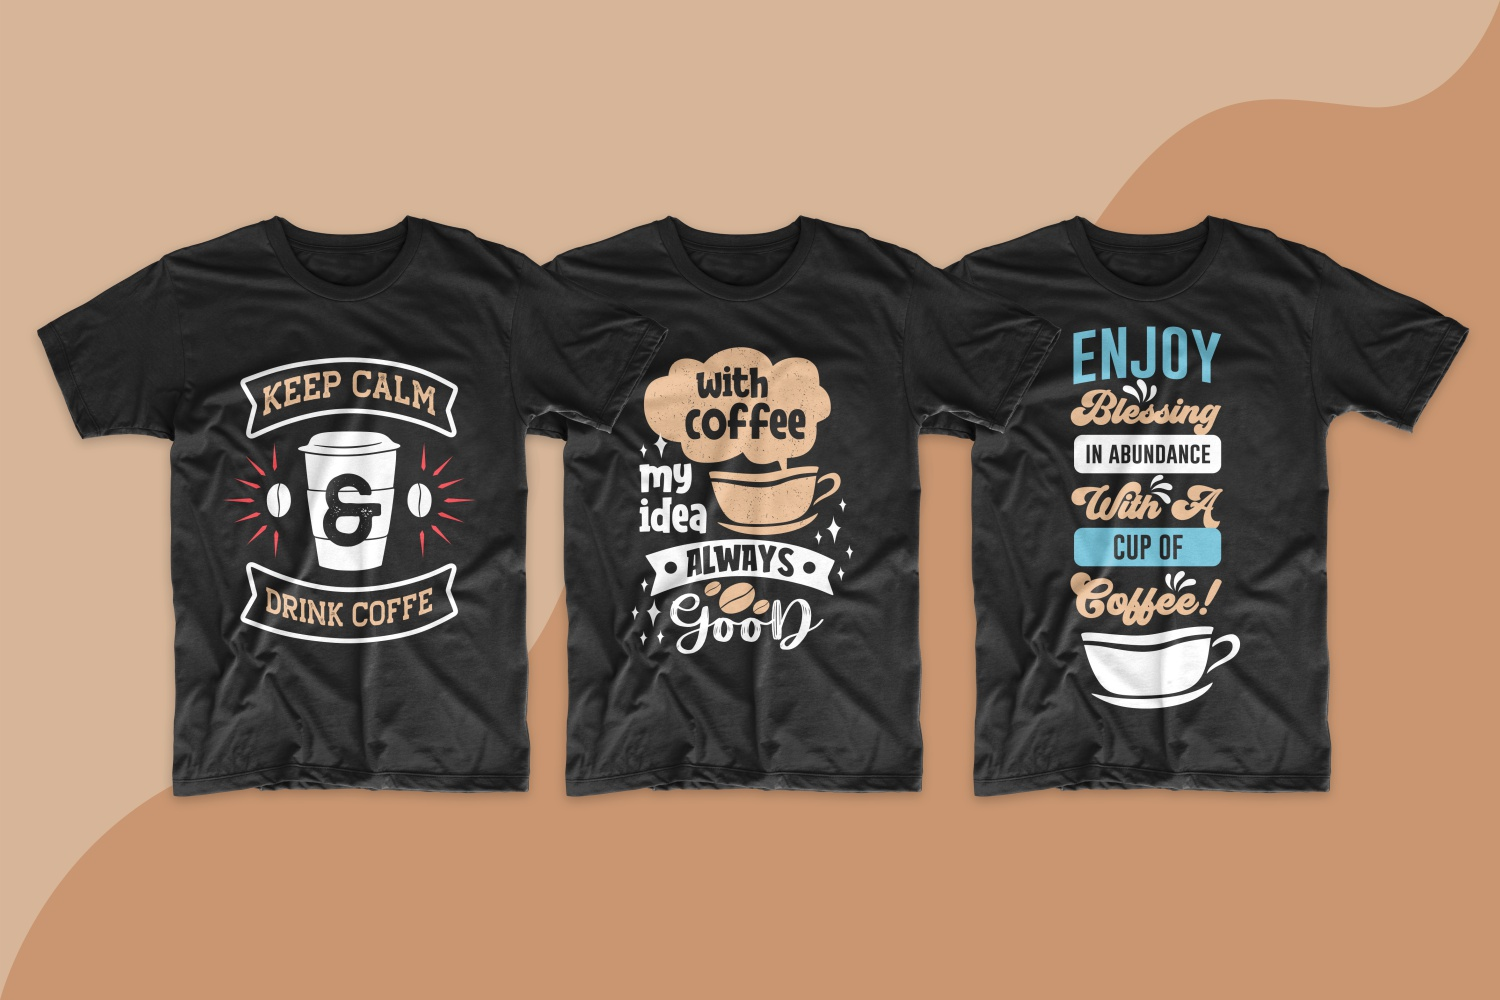 Three black T-shirts with coffee quotes and a beautiful illustration.